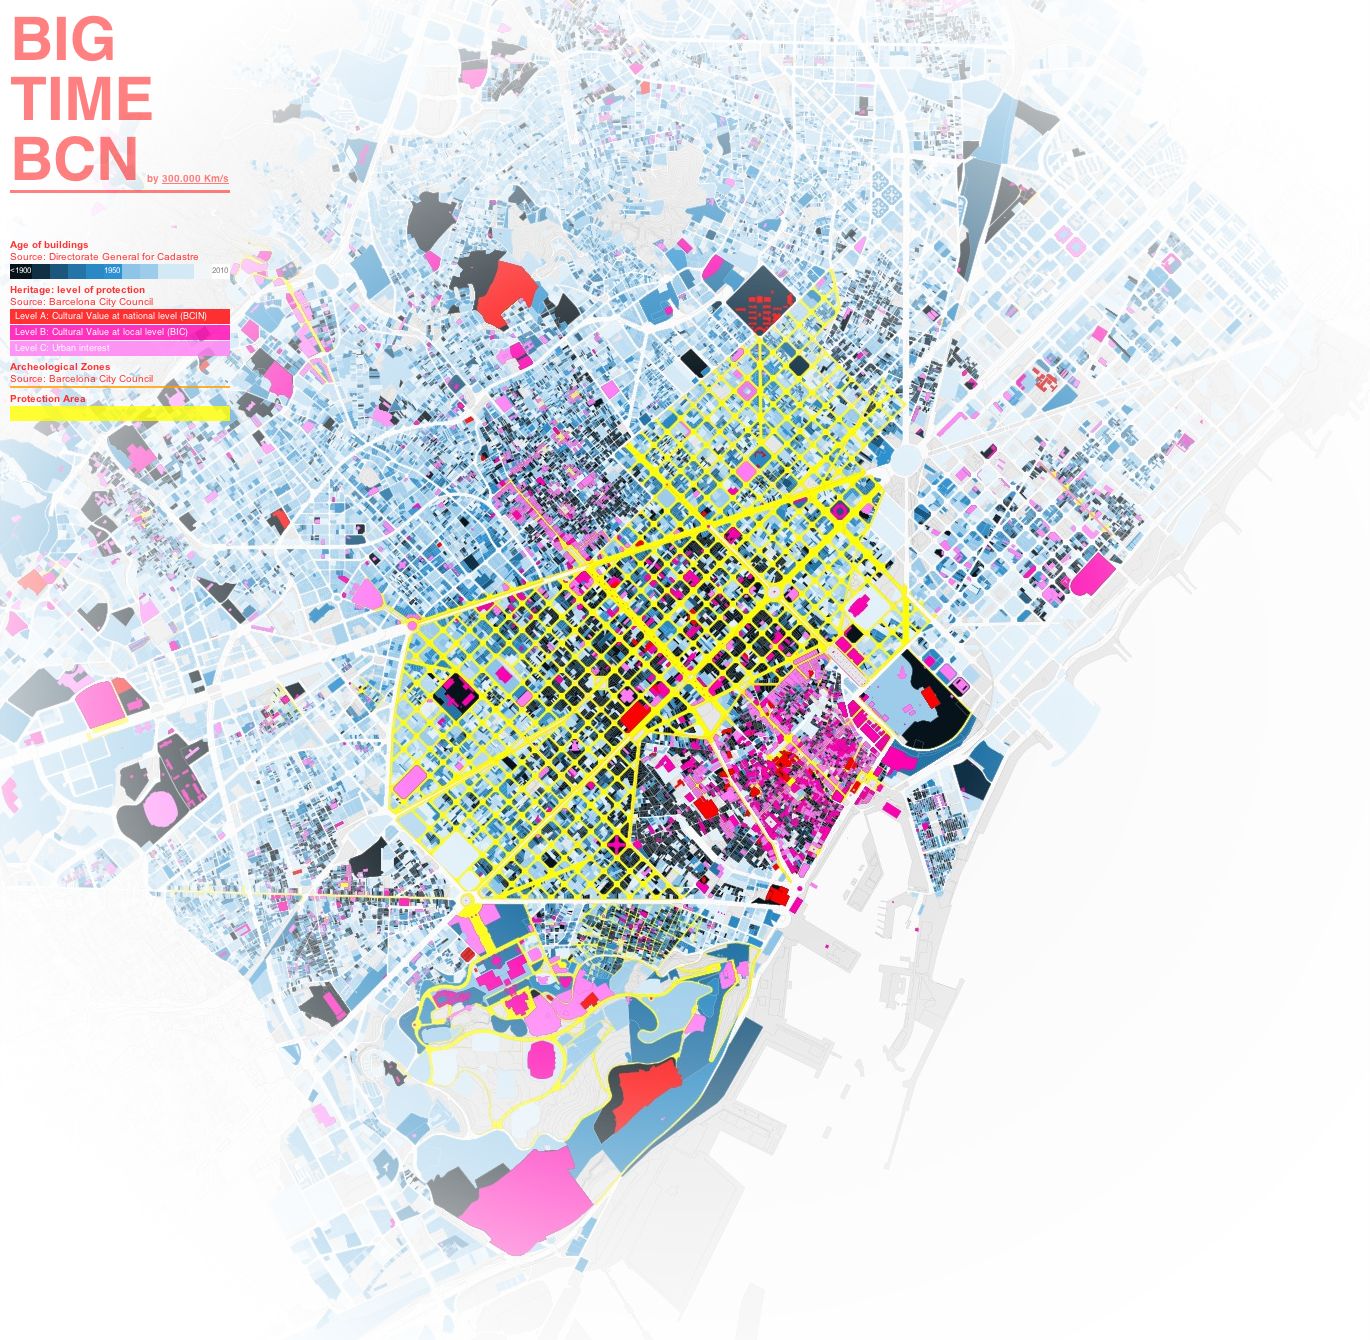 Site Map Diagram: Stunning Interactive Map Of Barcelona Revealing The Age Of The City.